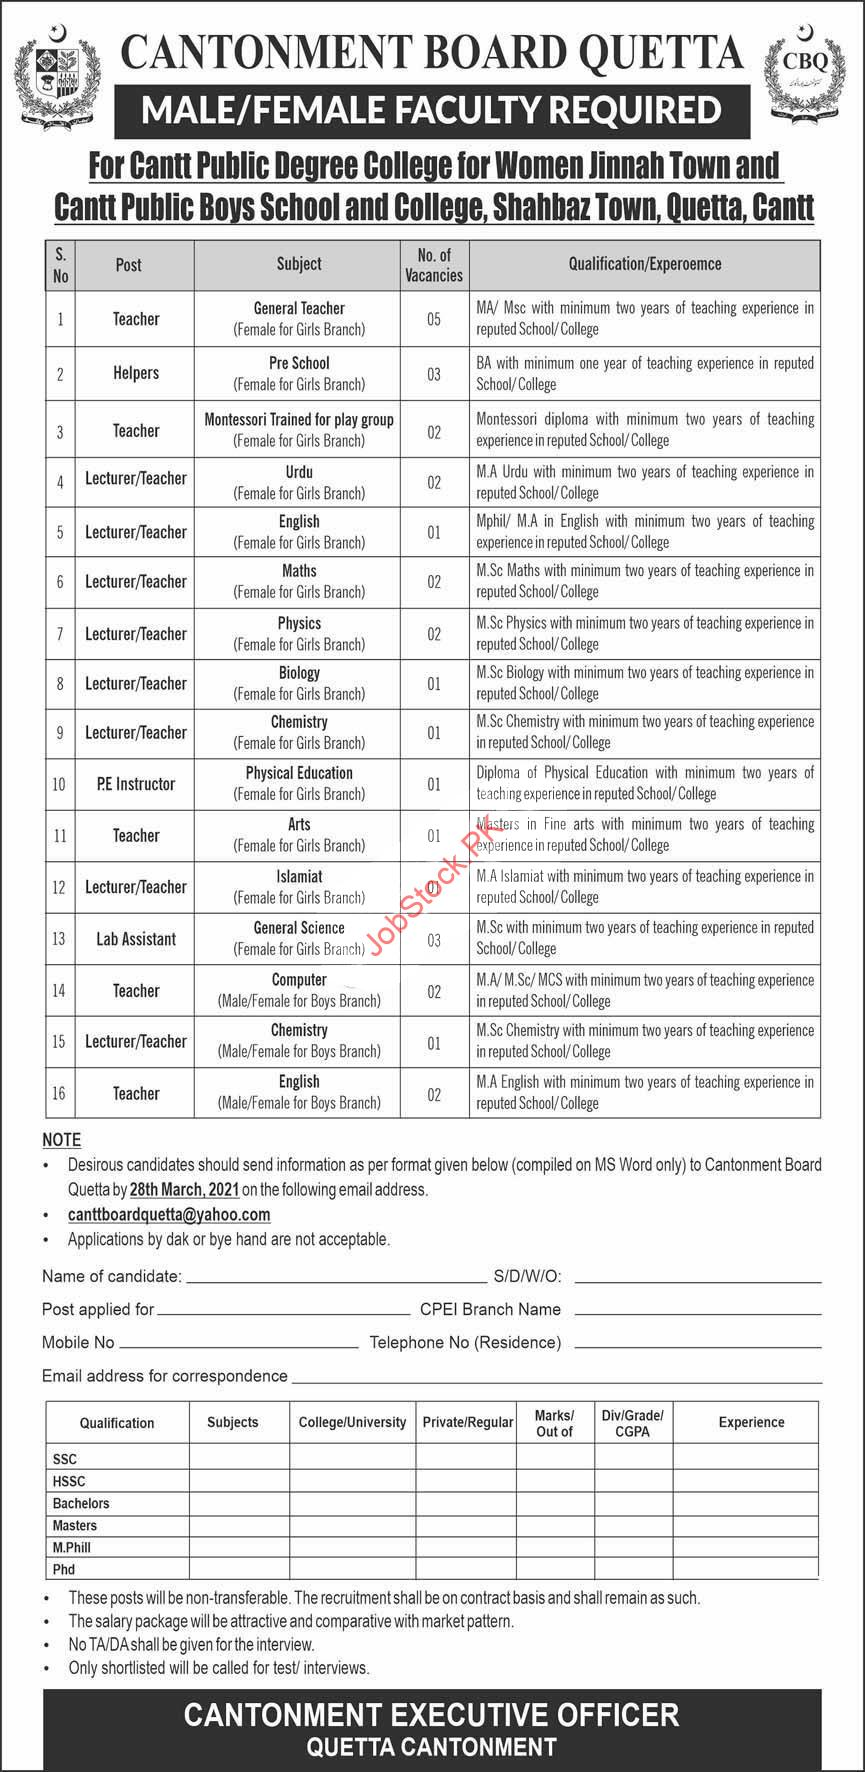 Cantoment Board Quetta Cantt Public Degree College Women Jobs 2021